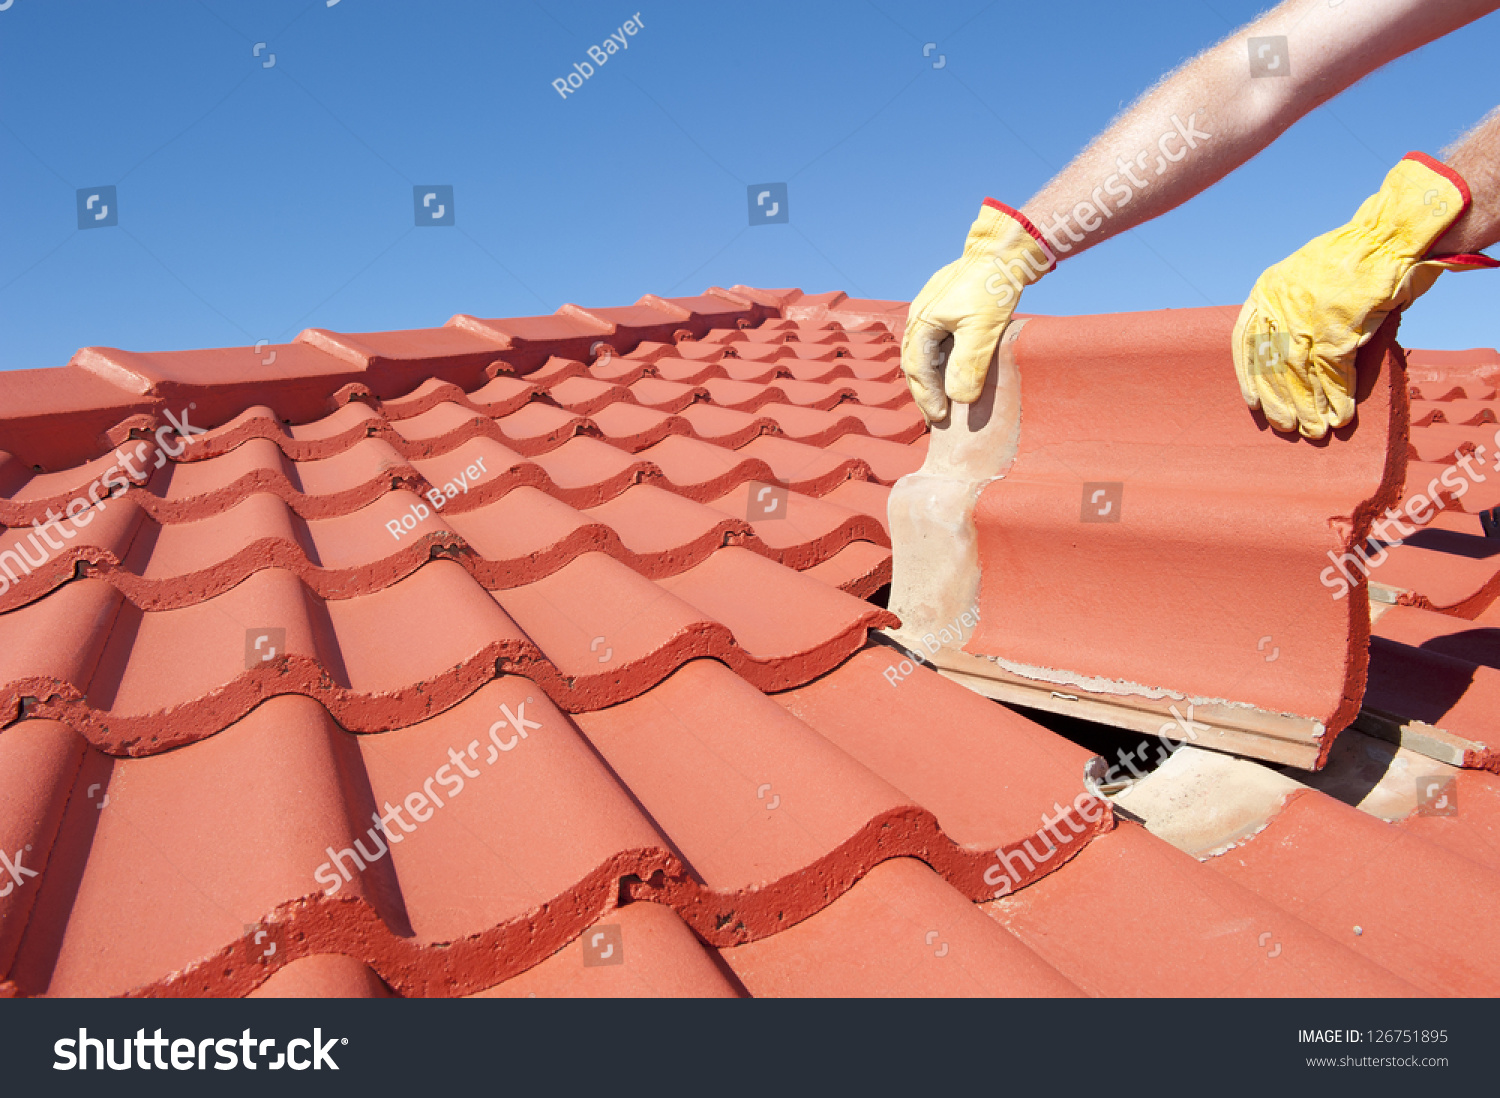 stock-photo-roof-repair-worker-with-yellow-gloves-replacing-red-tiles-or-shingles-on-house-with-blue-sky-as-126751895.jpg